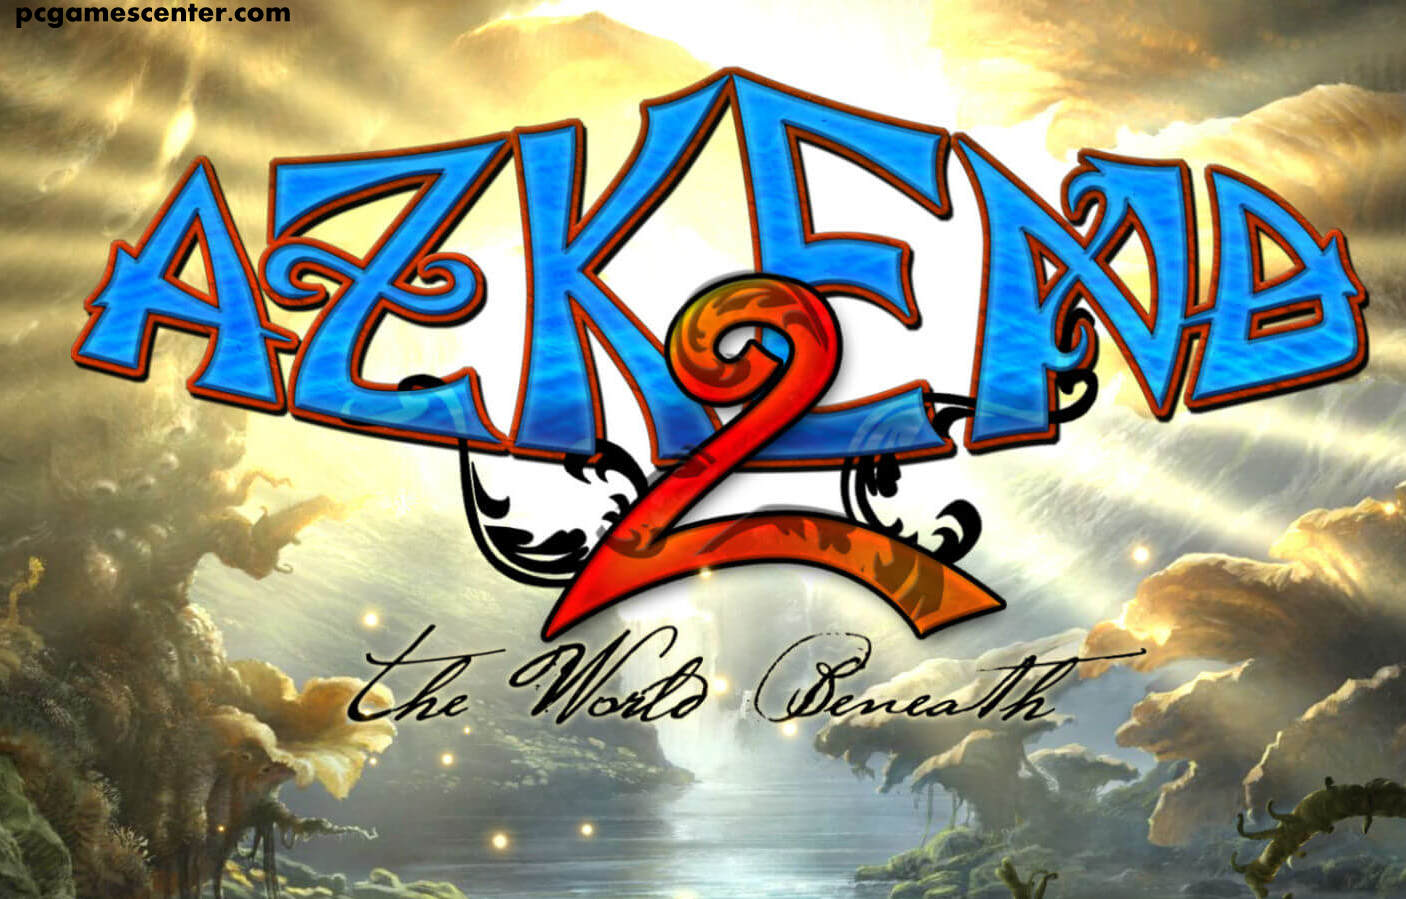 Azkend 2 The World Beneath PC Game Free Download